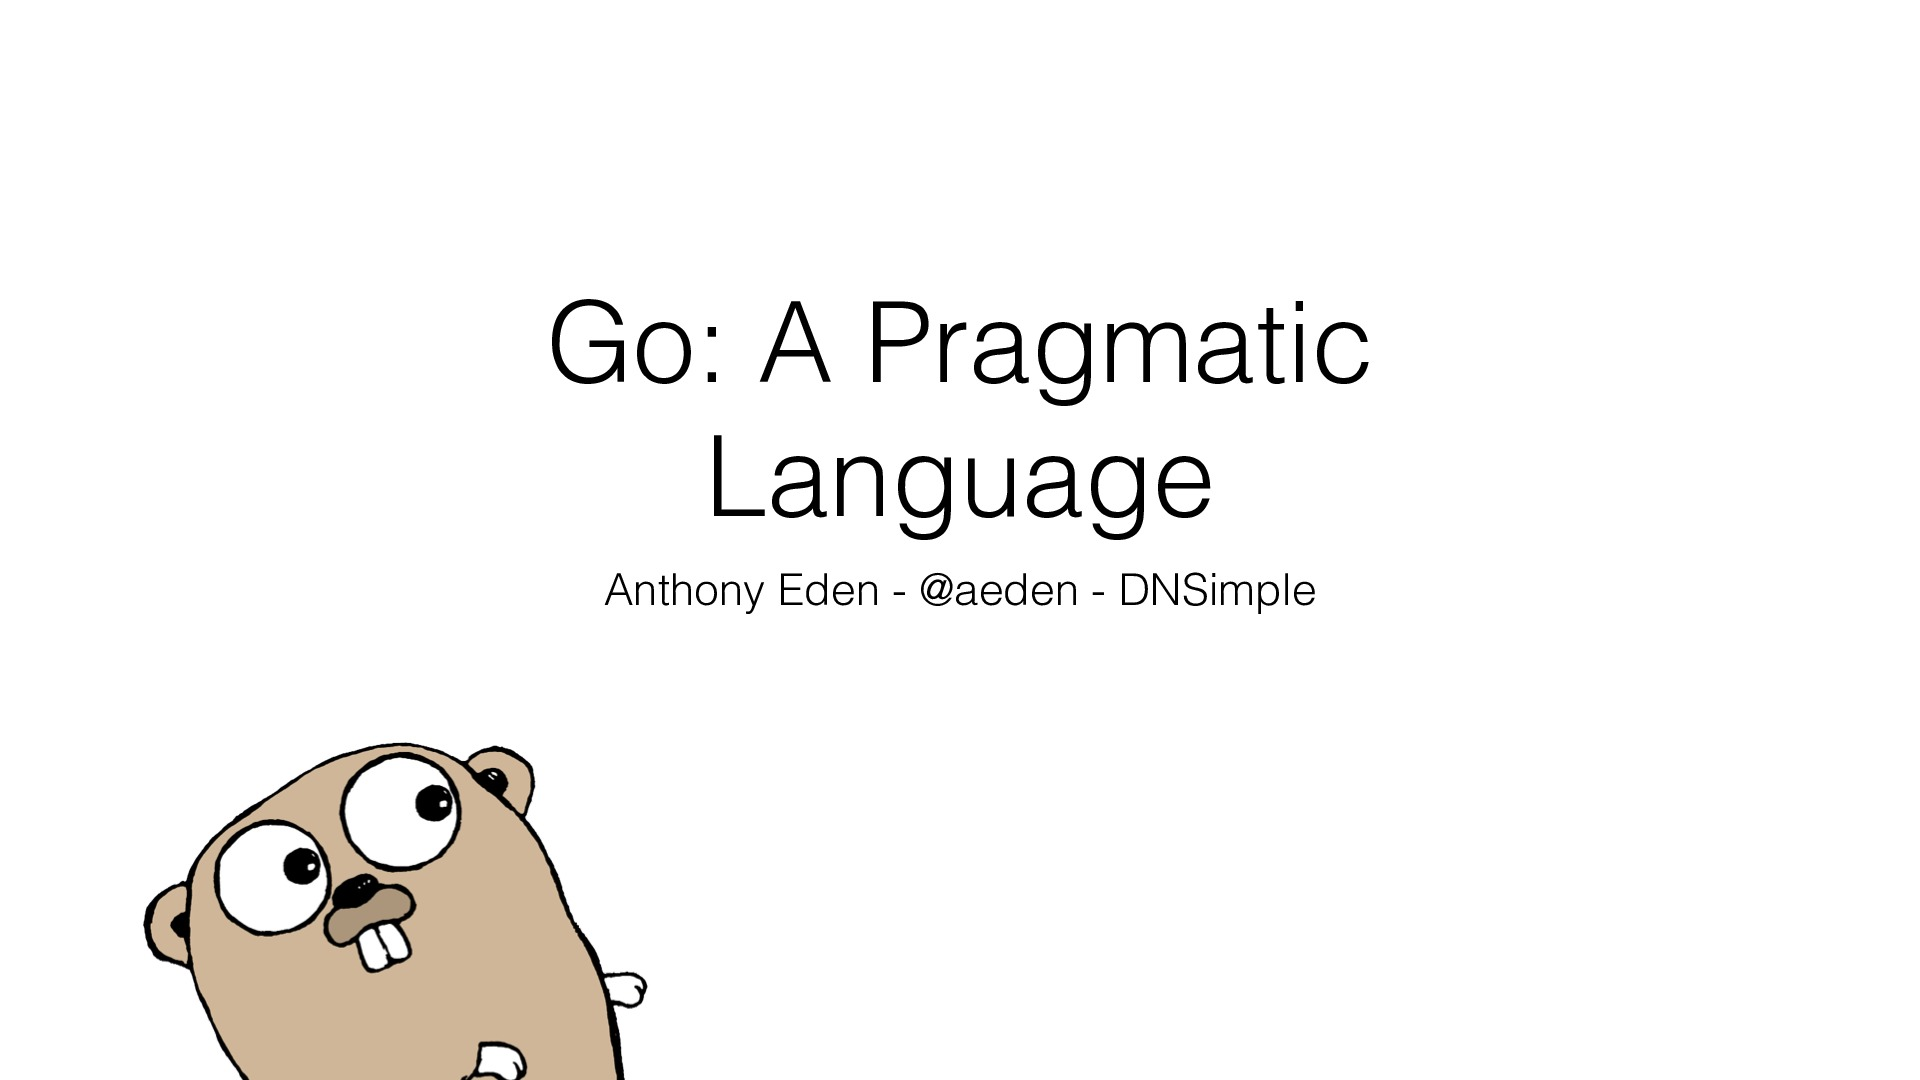 Go: A Pragmatic Language